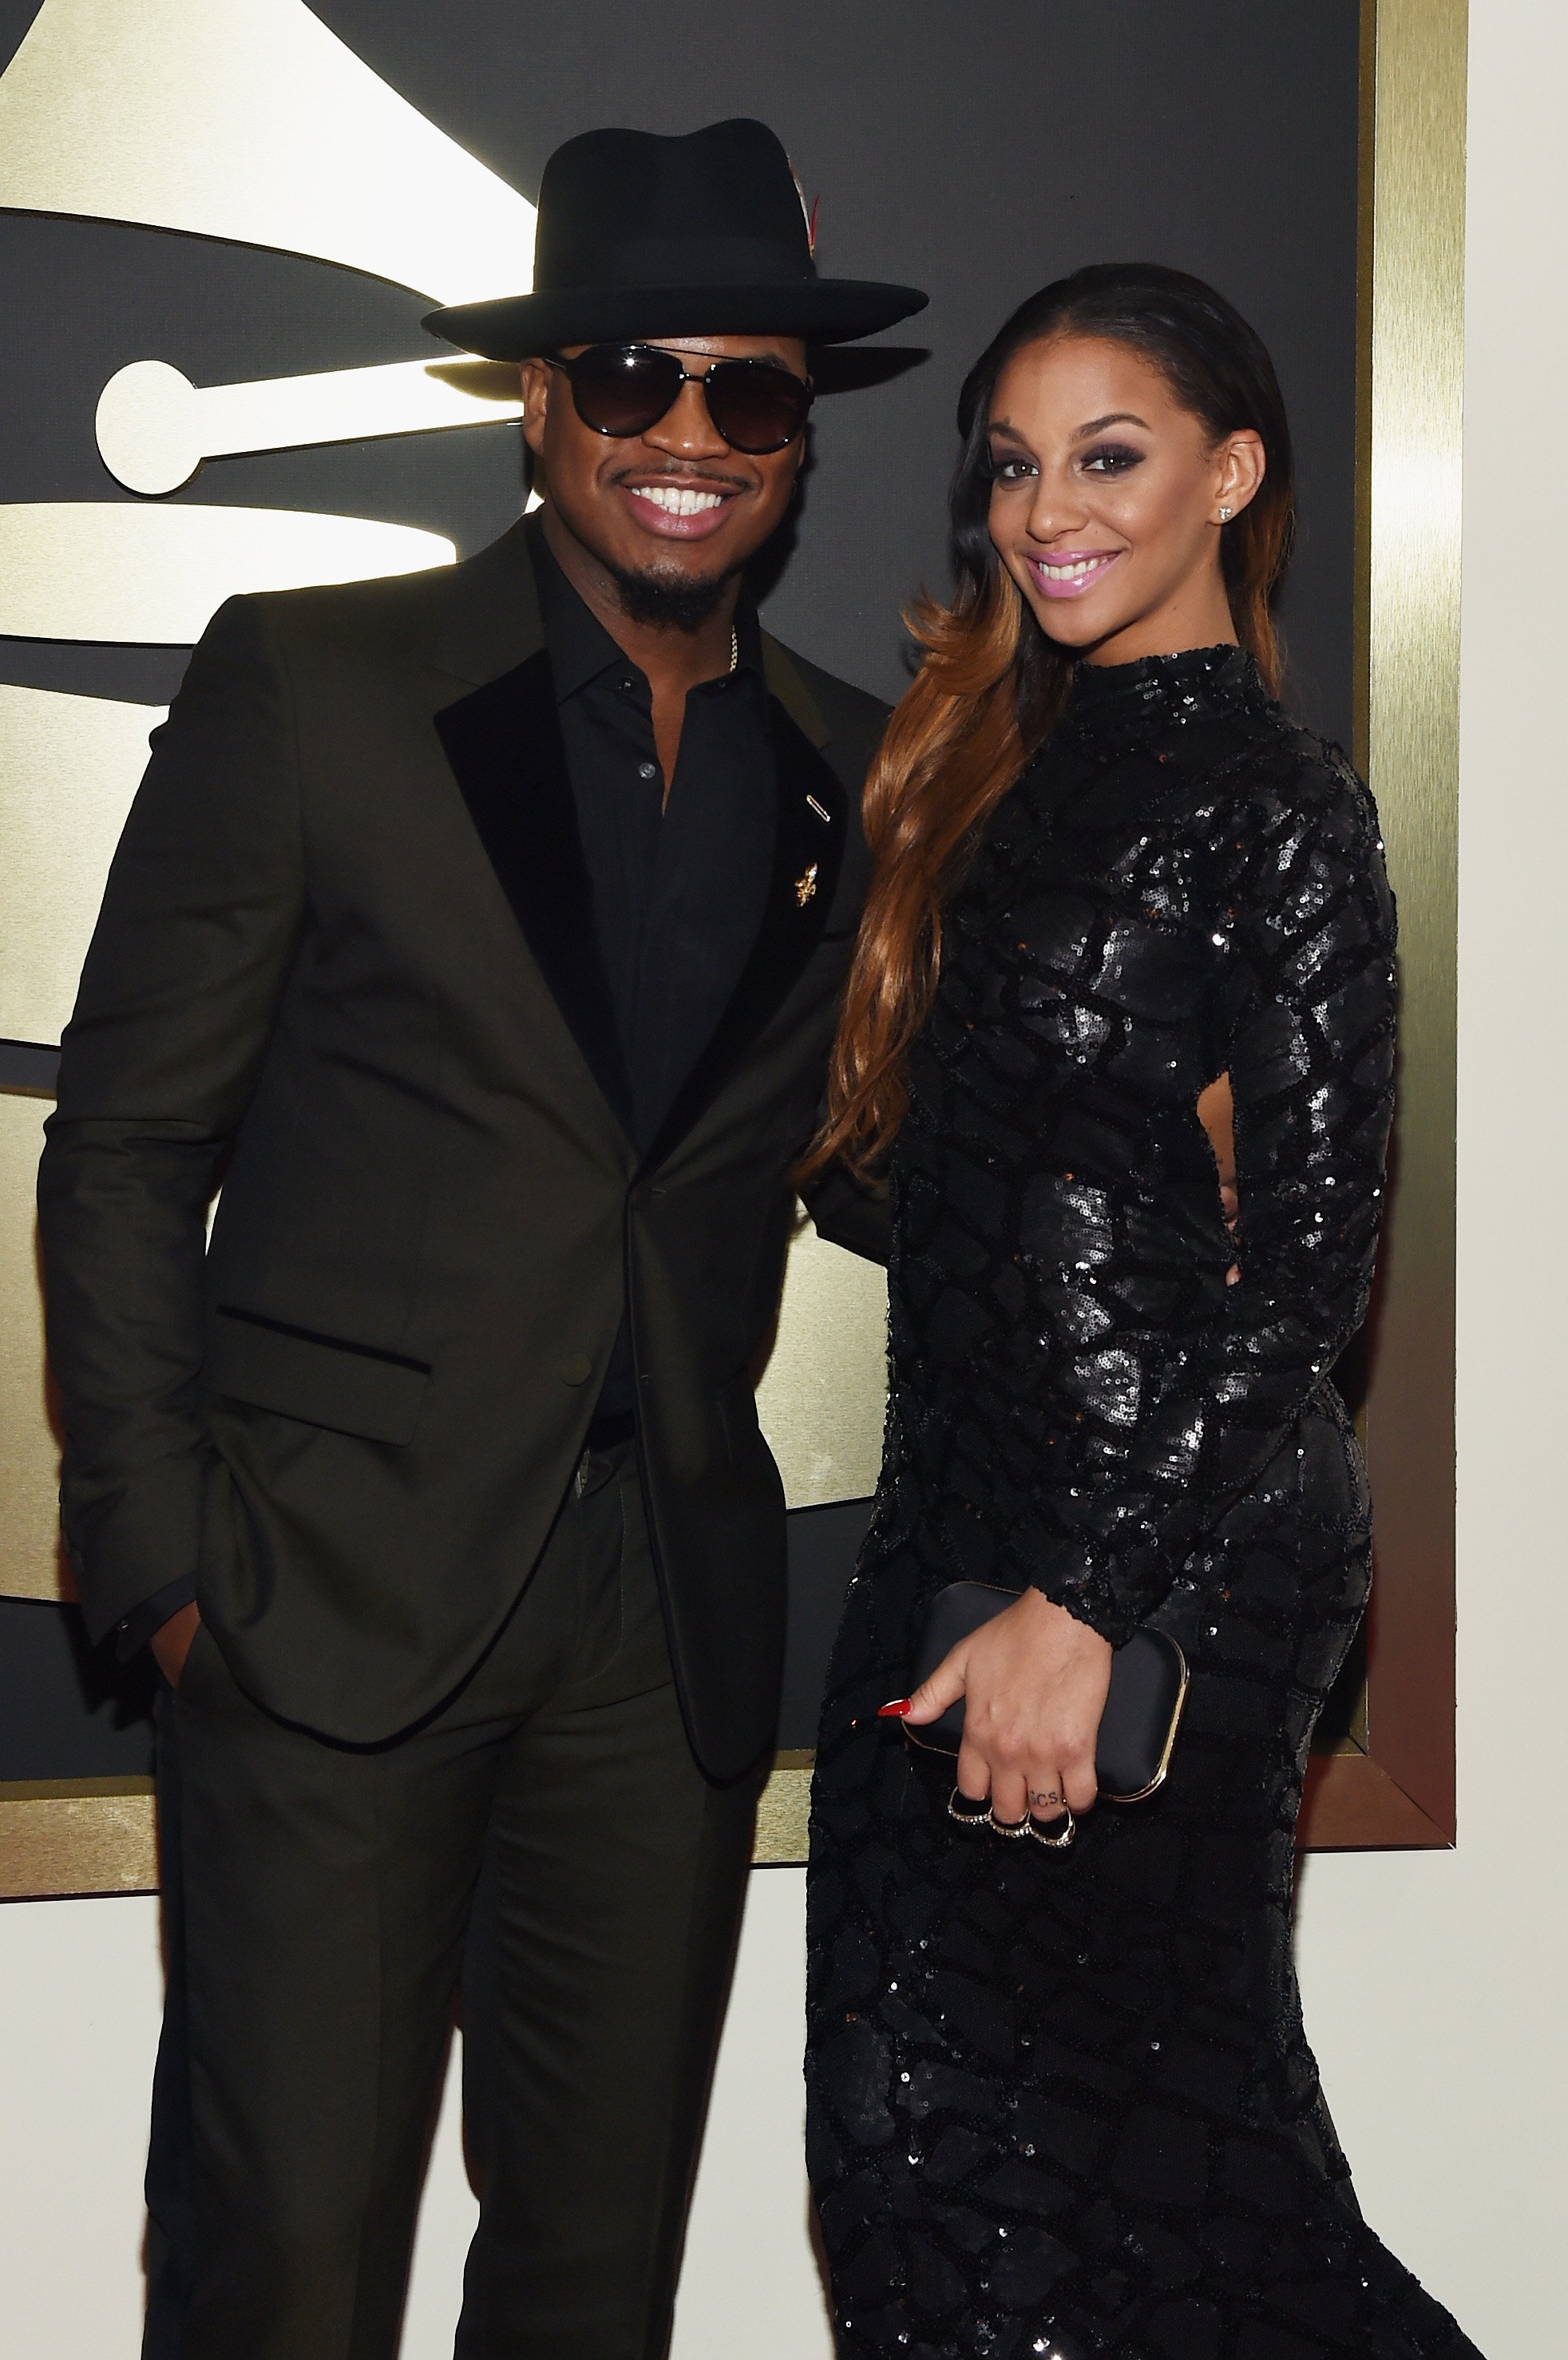 Ne-Yo and Crystal Smith at the red carpet of the 57th Grammy Awards at the Staples Center in February 2015. | Photo: Getty Images